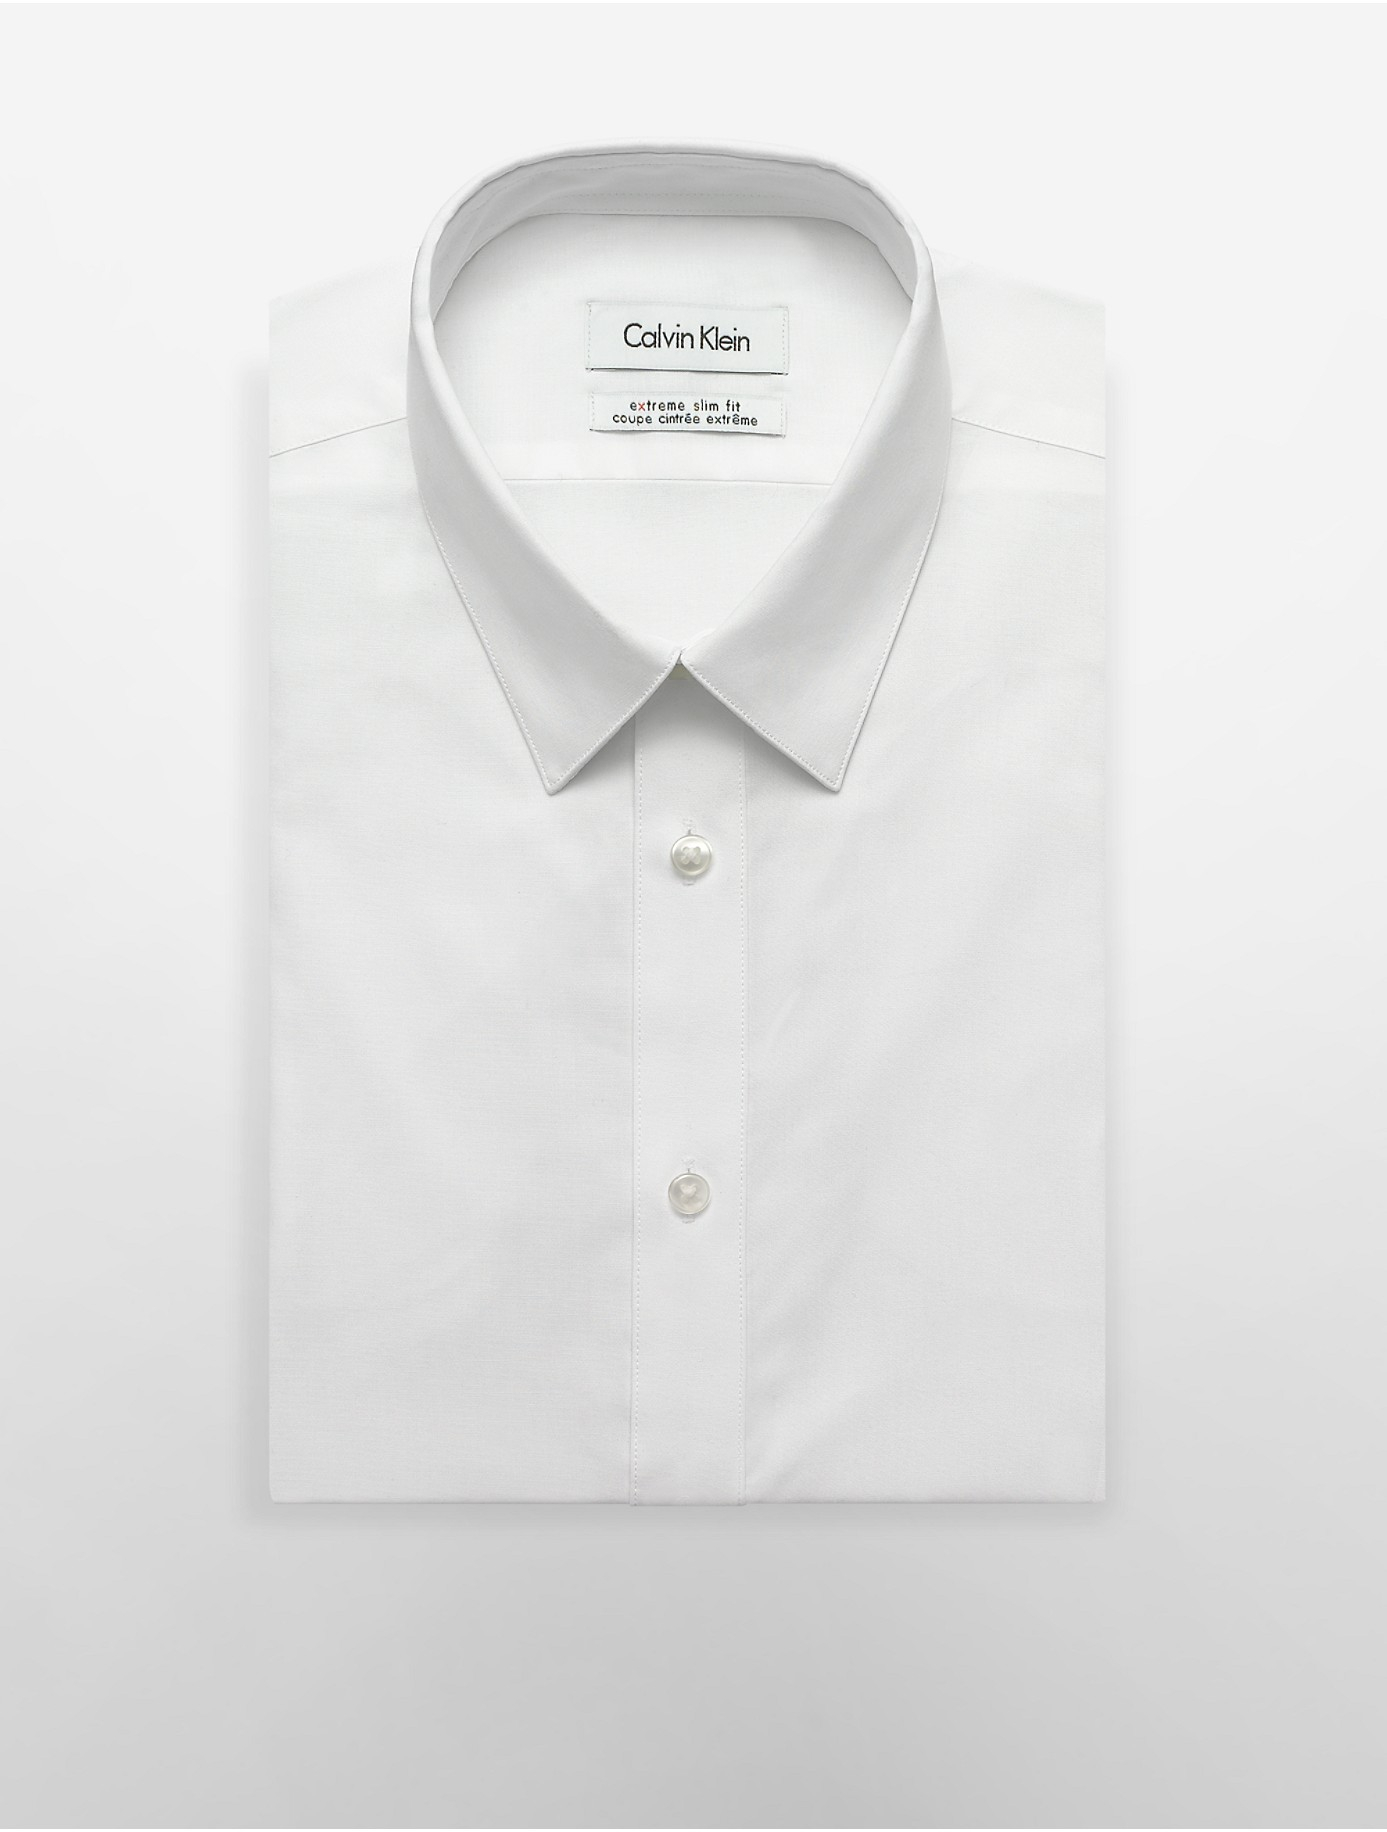 Lyst calvin klein white label x fit ultra slim fit for Calvin klein athletic fit dress shirt